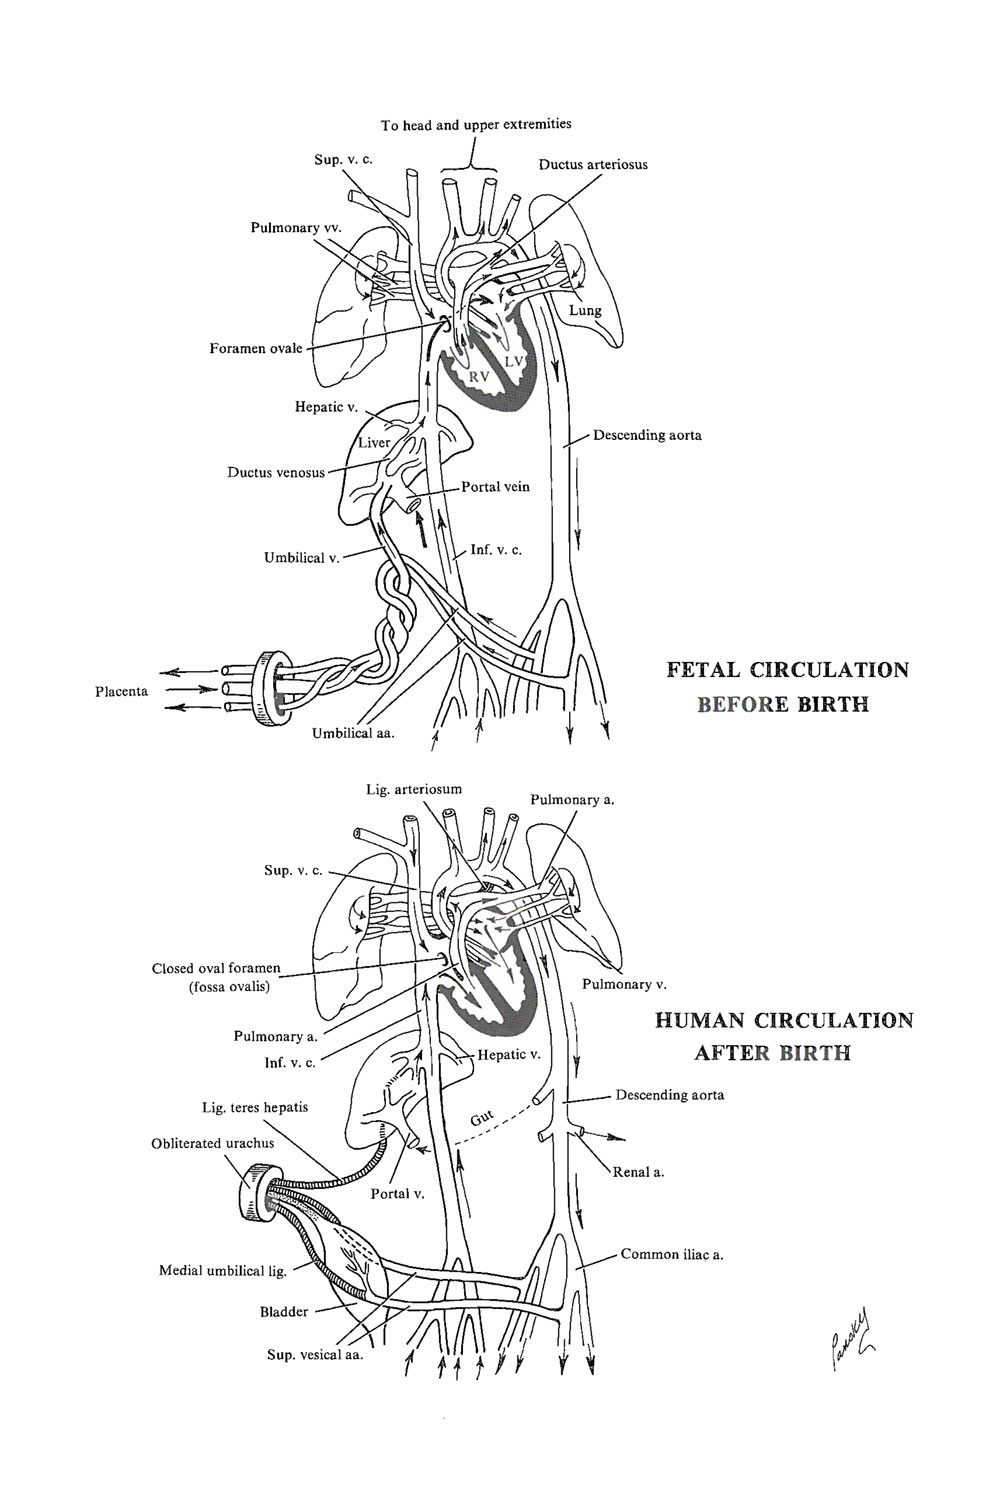 external heart diagram honda prelude alternator wiring chapter 129. the circulatory system before and after birth - review of medical embryology book ...